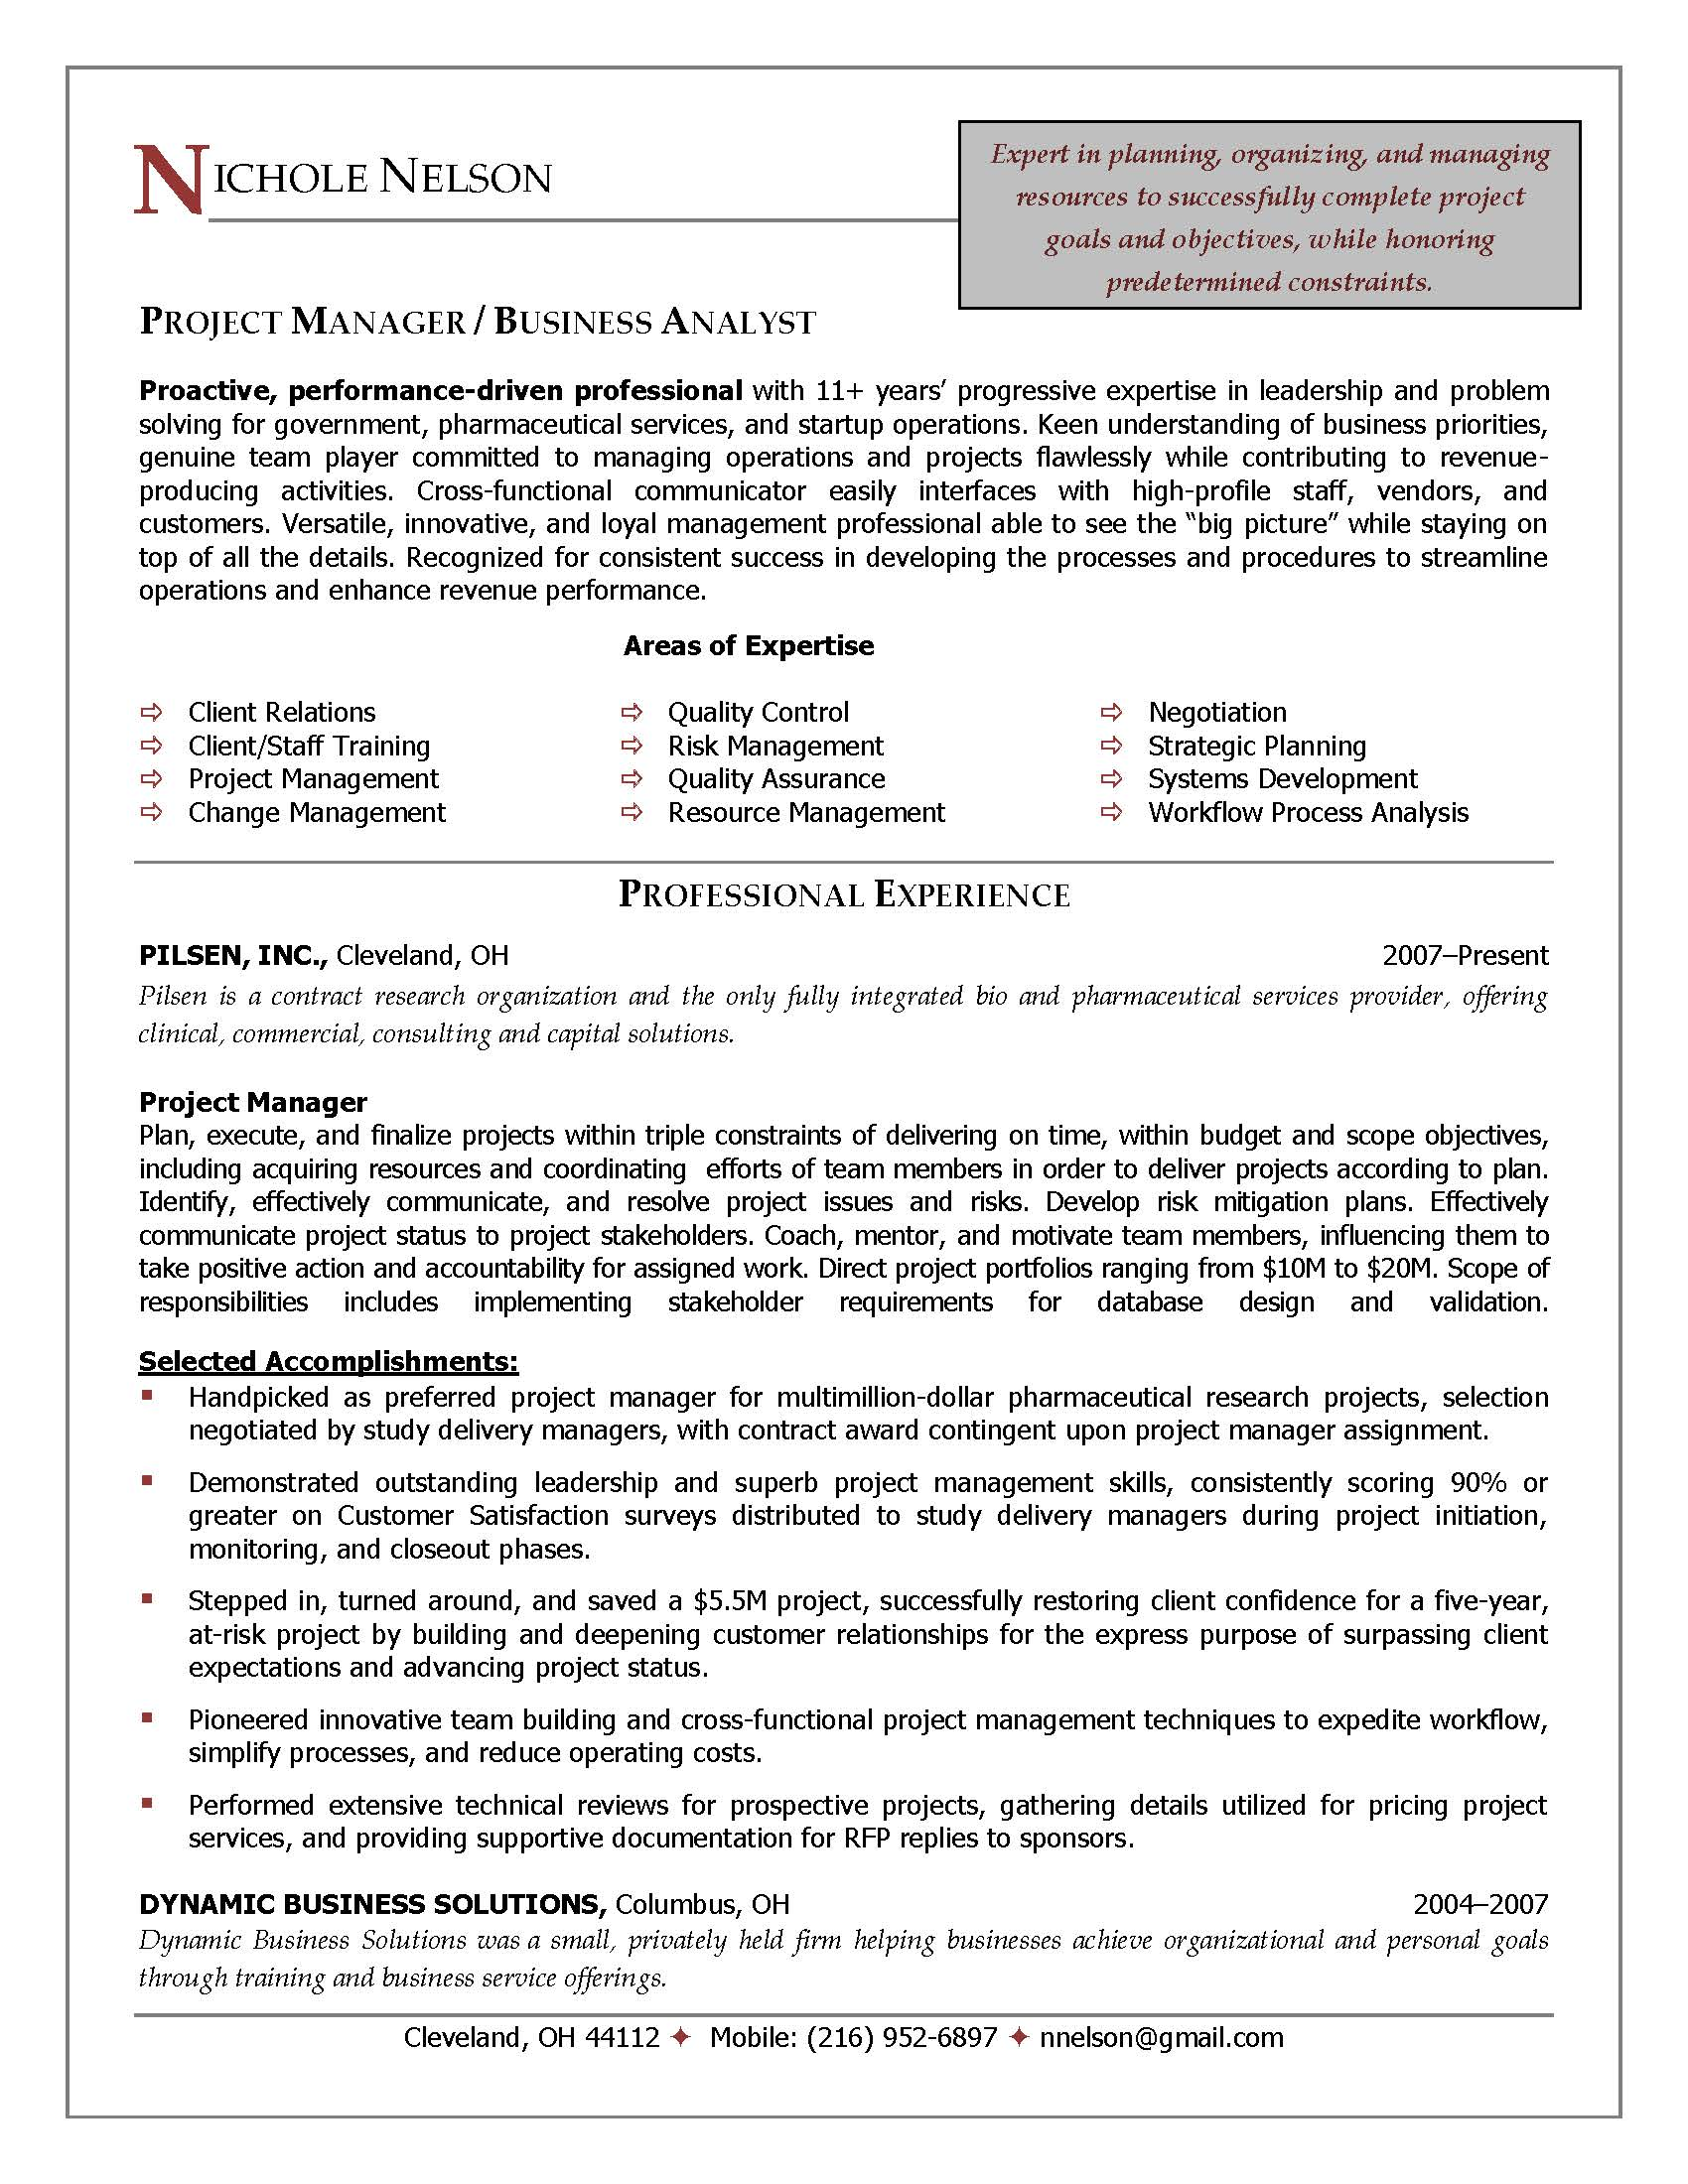 Application Project Manager Cover Letter Job Application Project